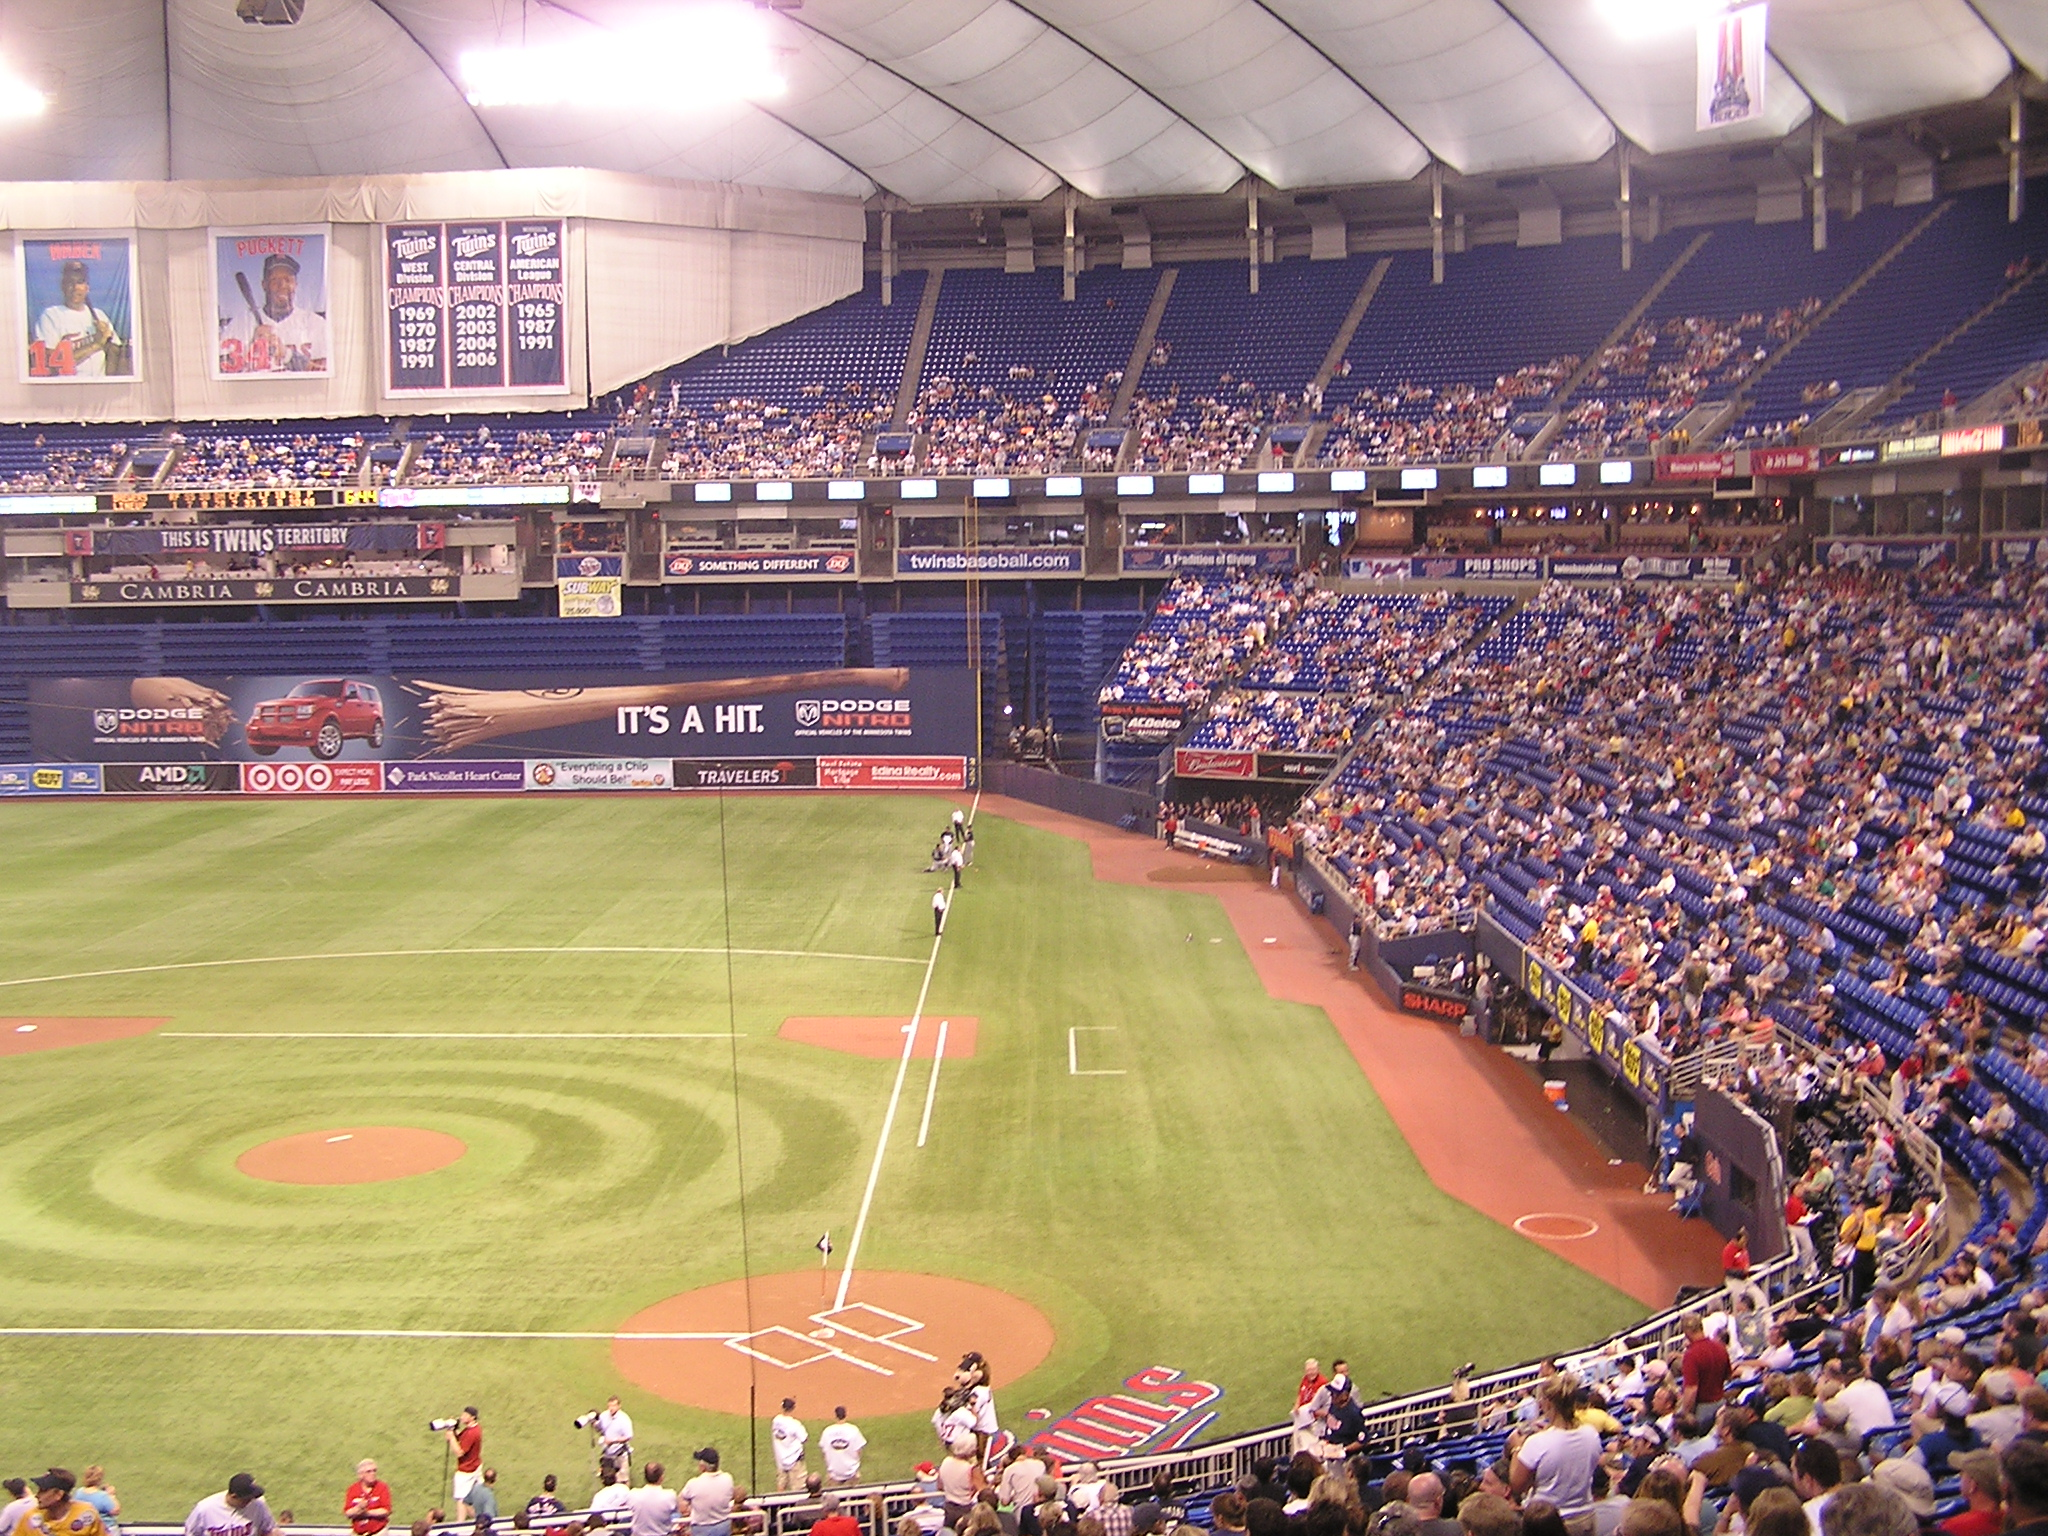 The view from behind Home Plate - The Metrodome